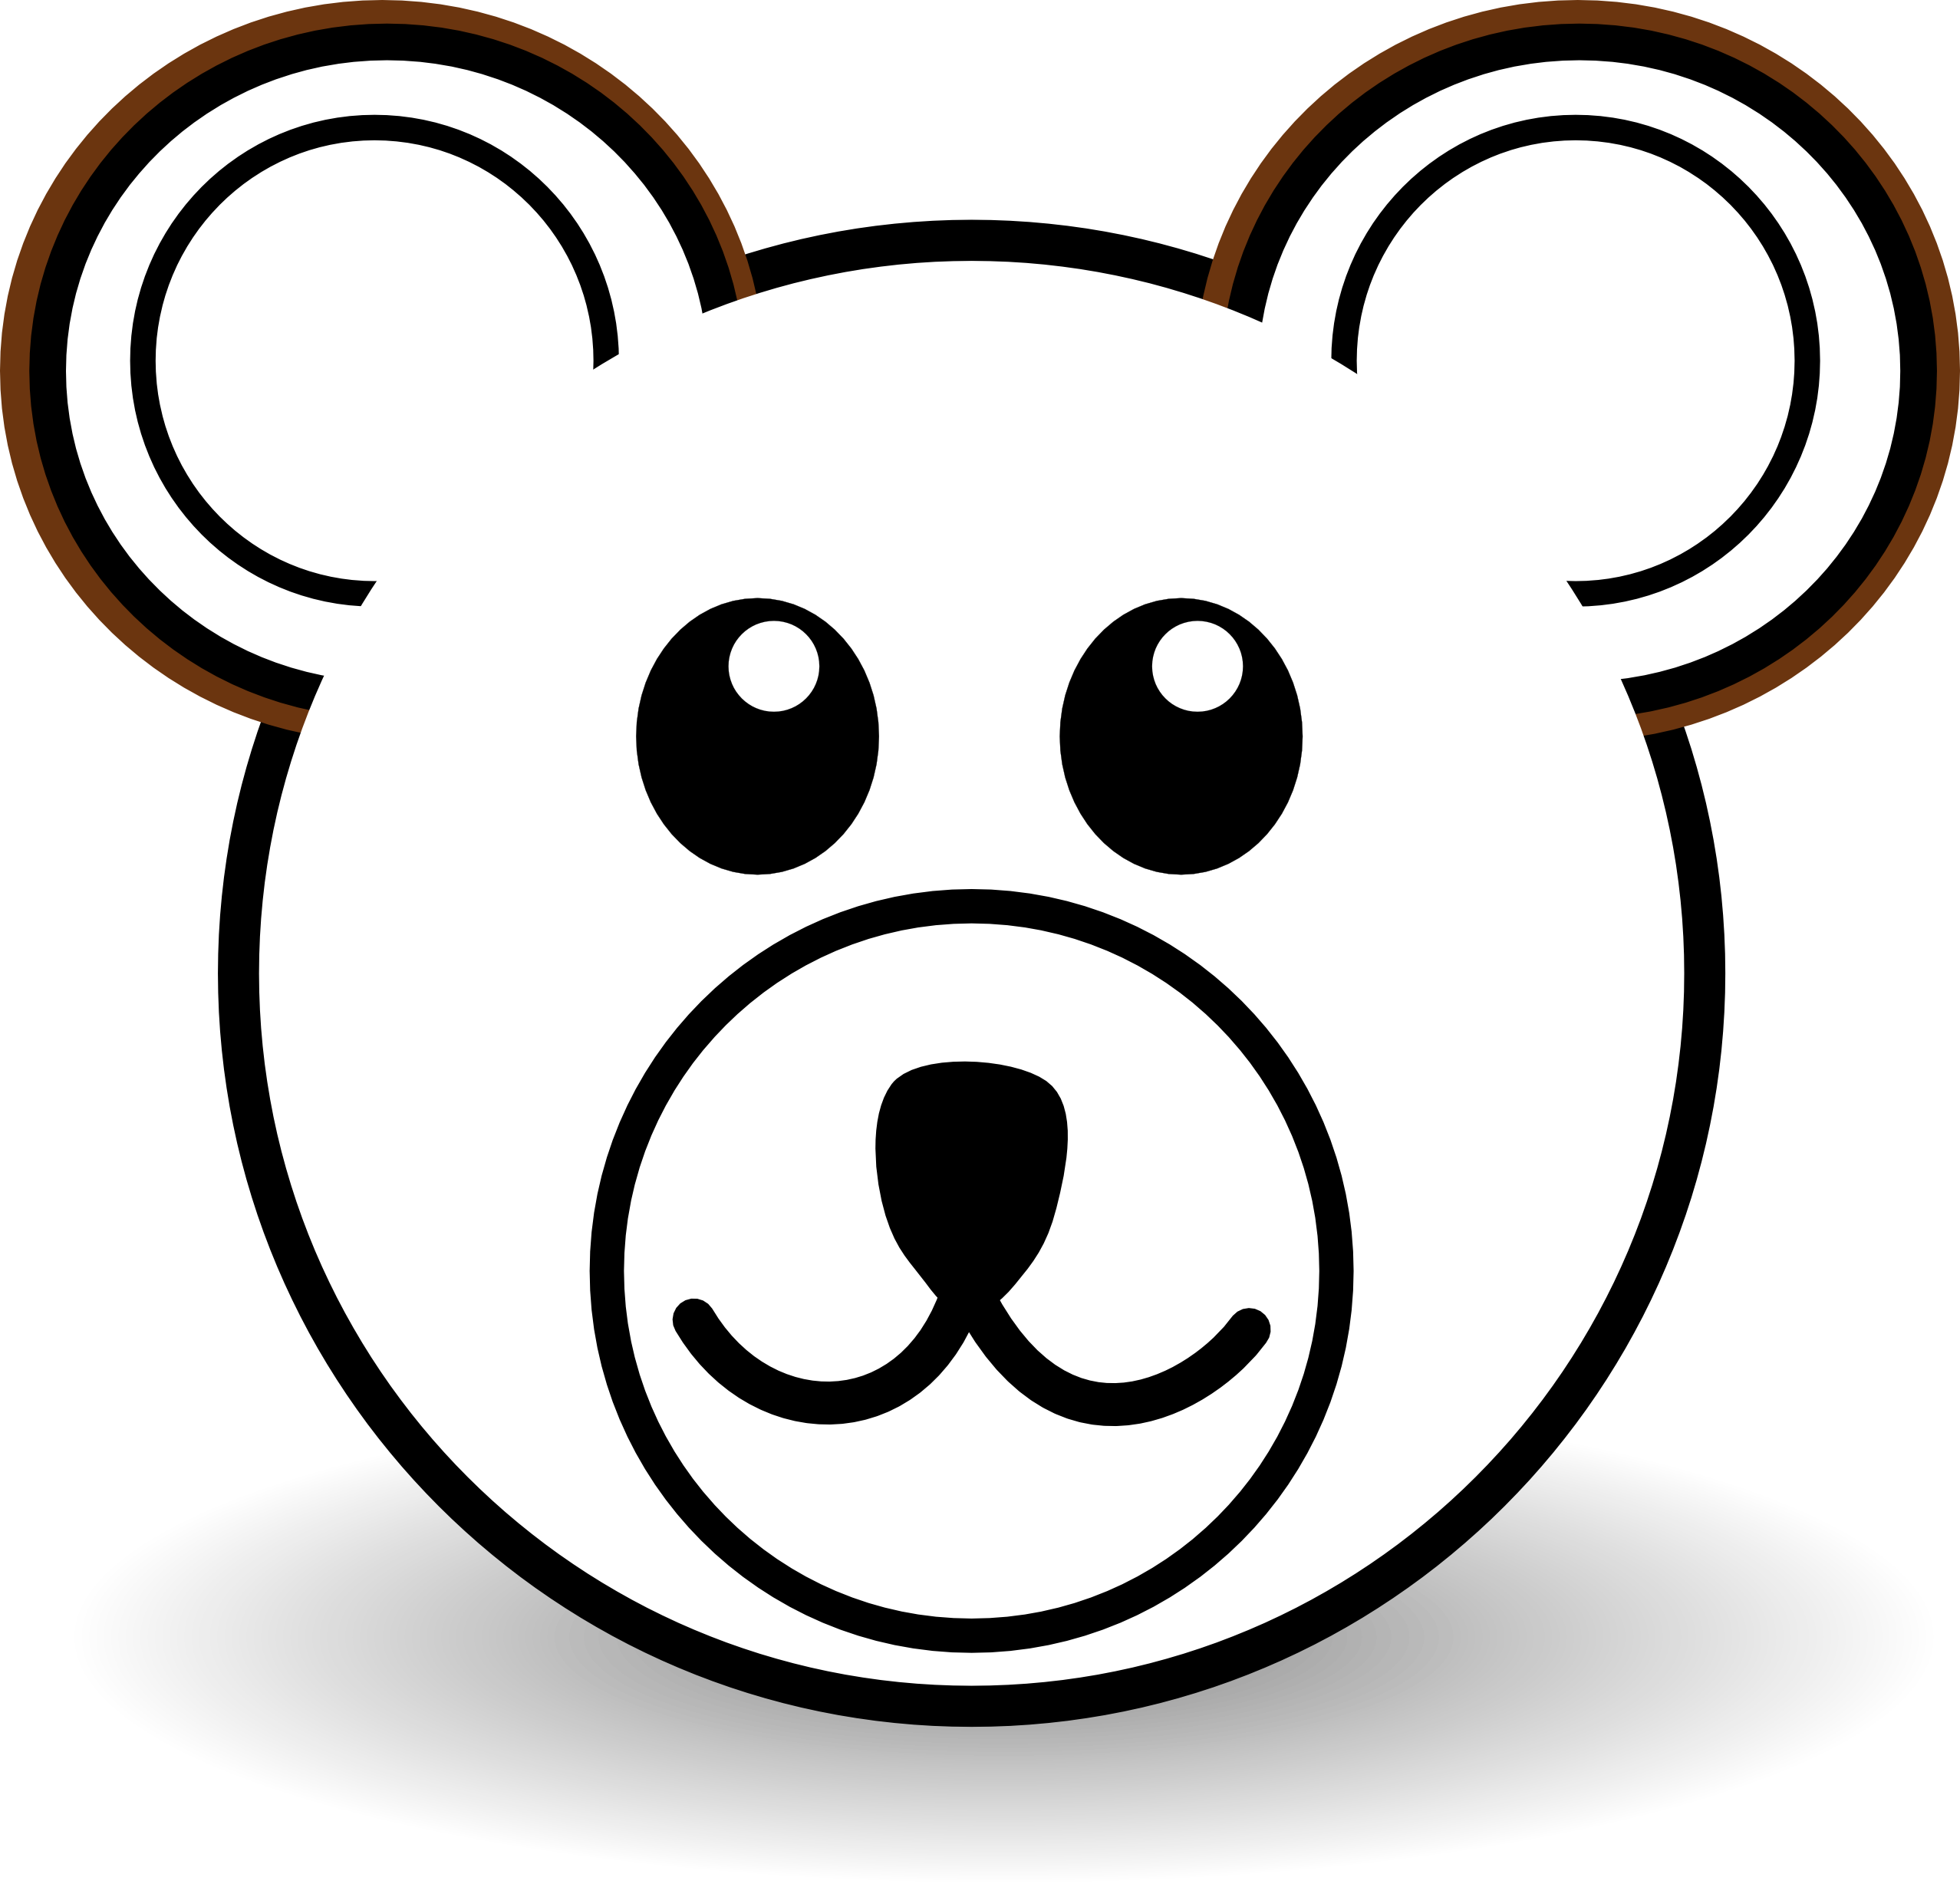 download Bear clipart outline. Outstanding of a teddy